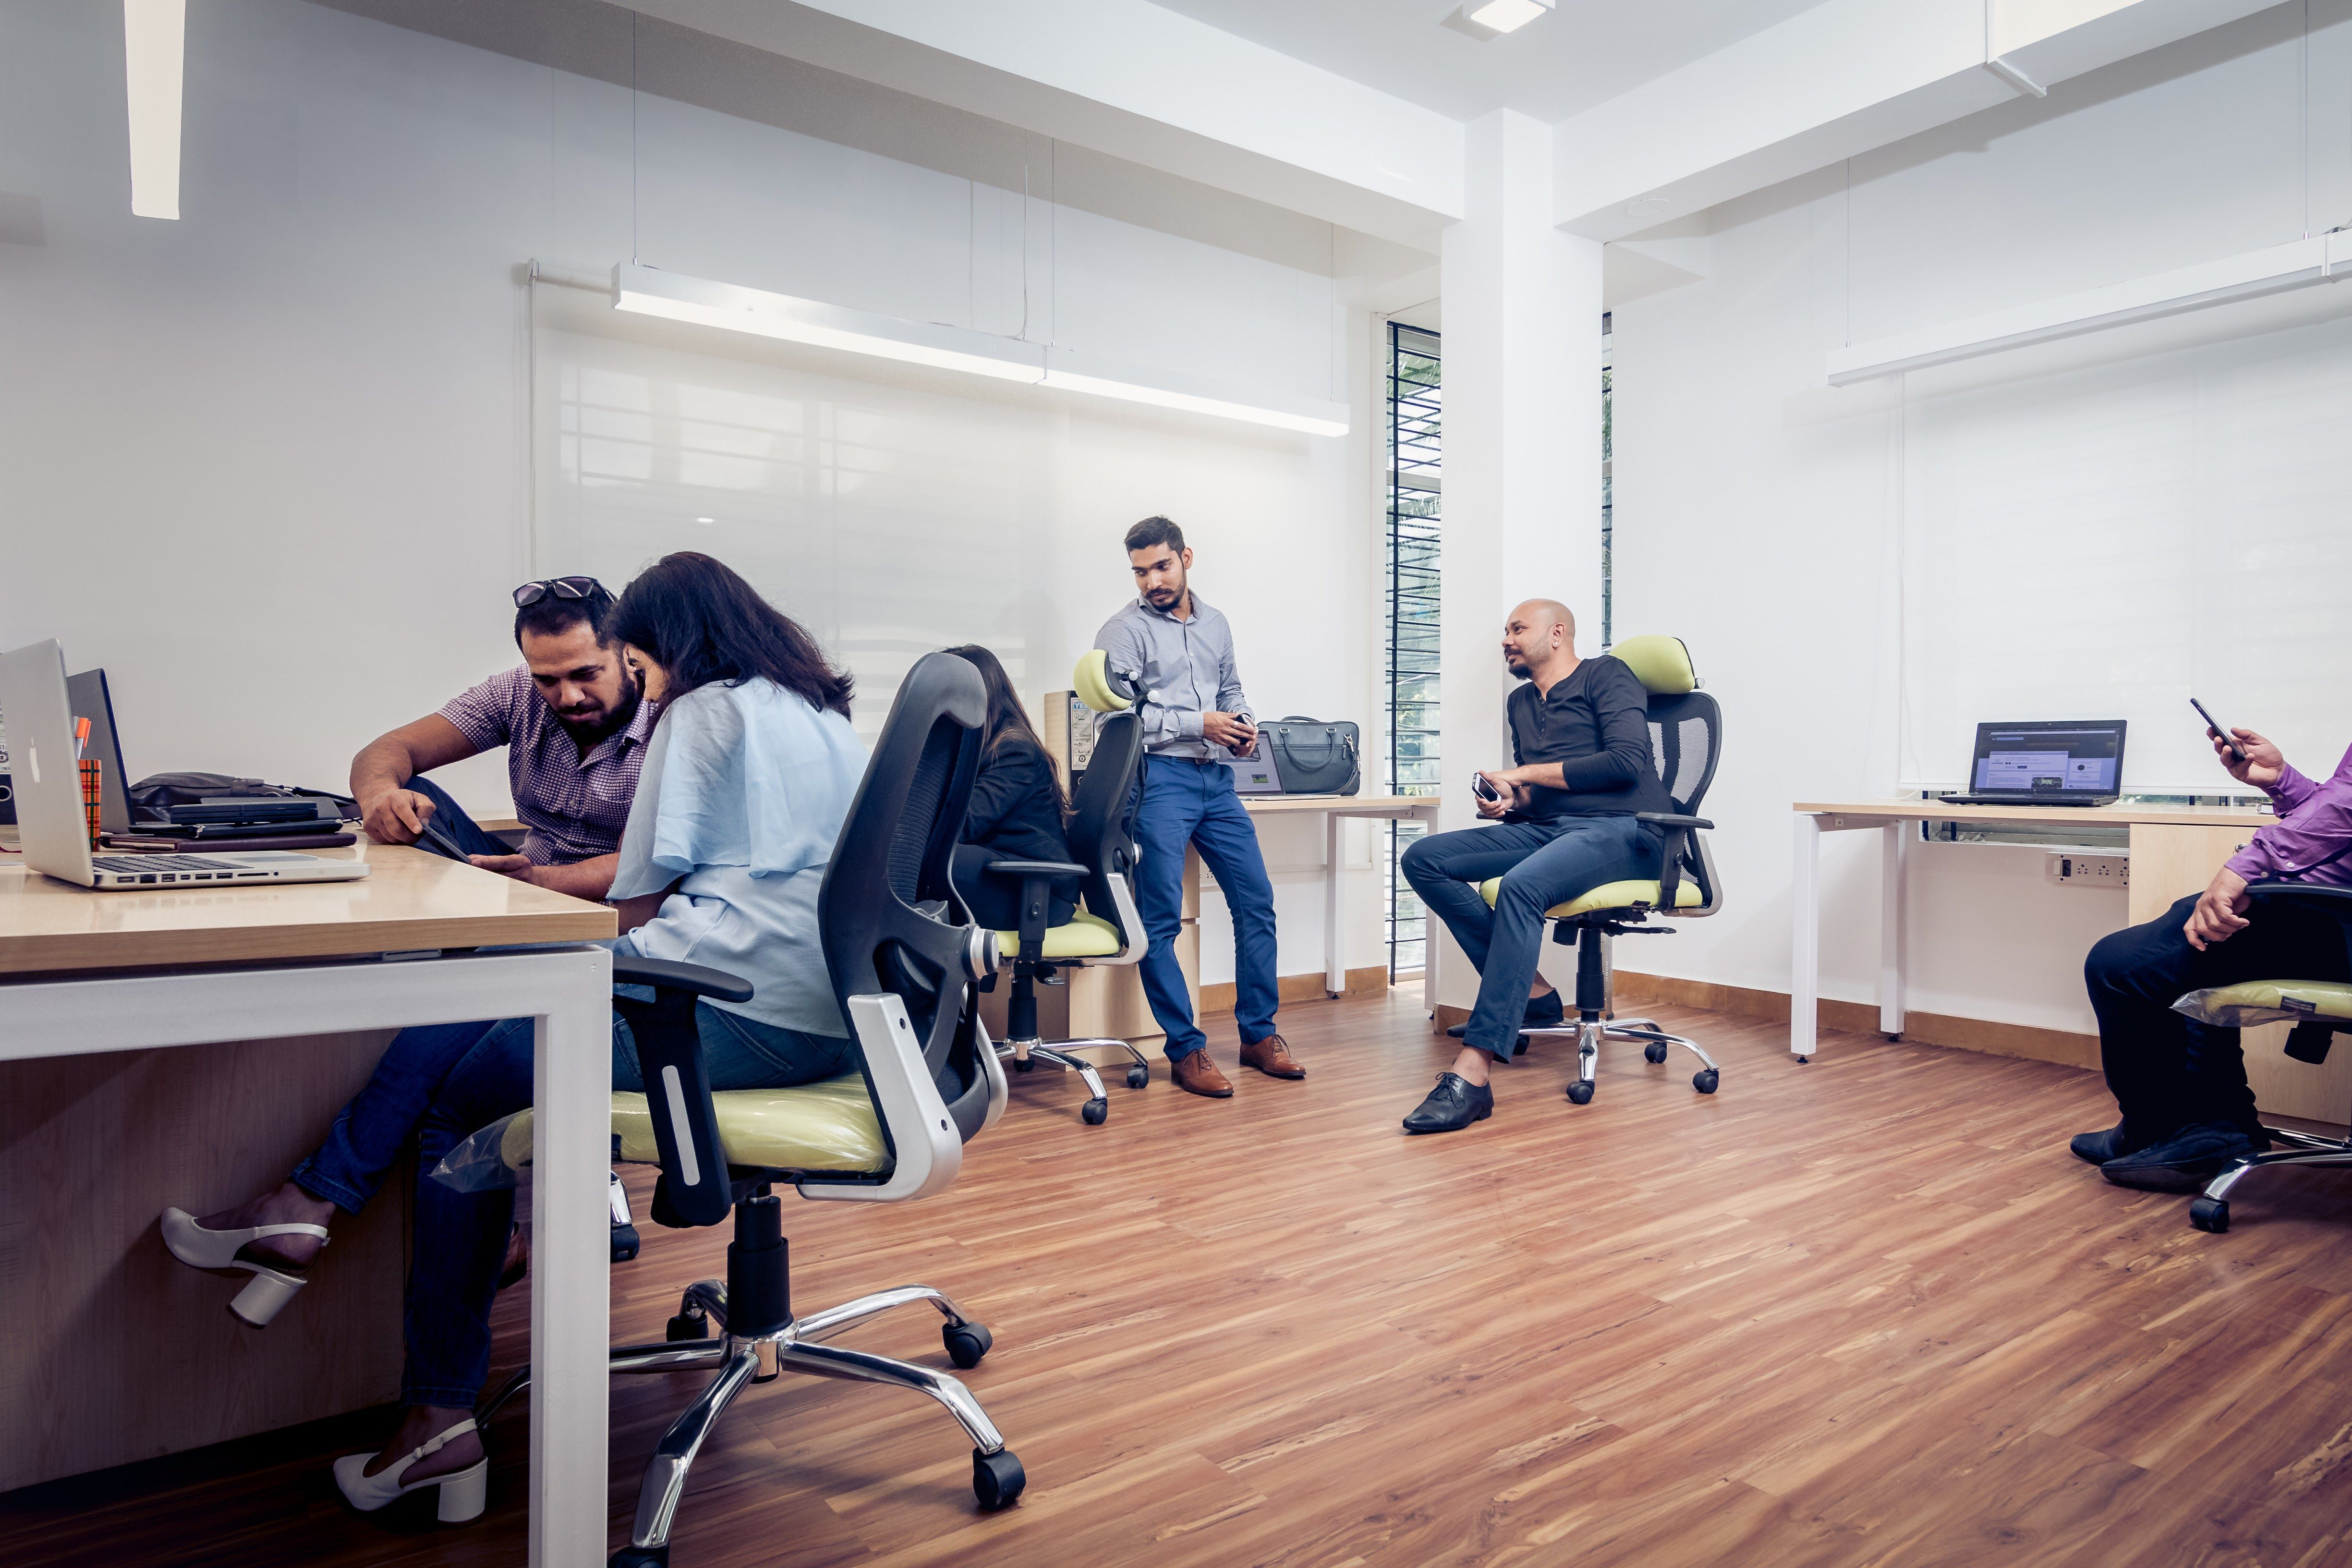 Come Join The Pack Coworking Space Rooms For Rent Shared Office Space